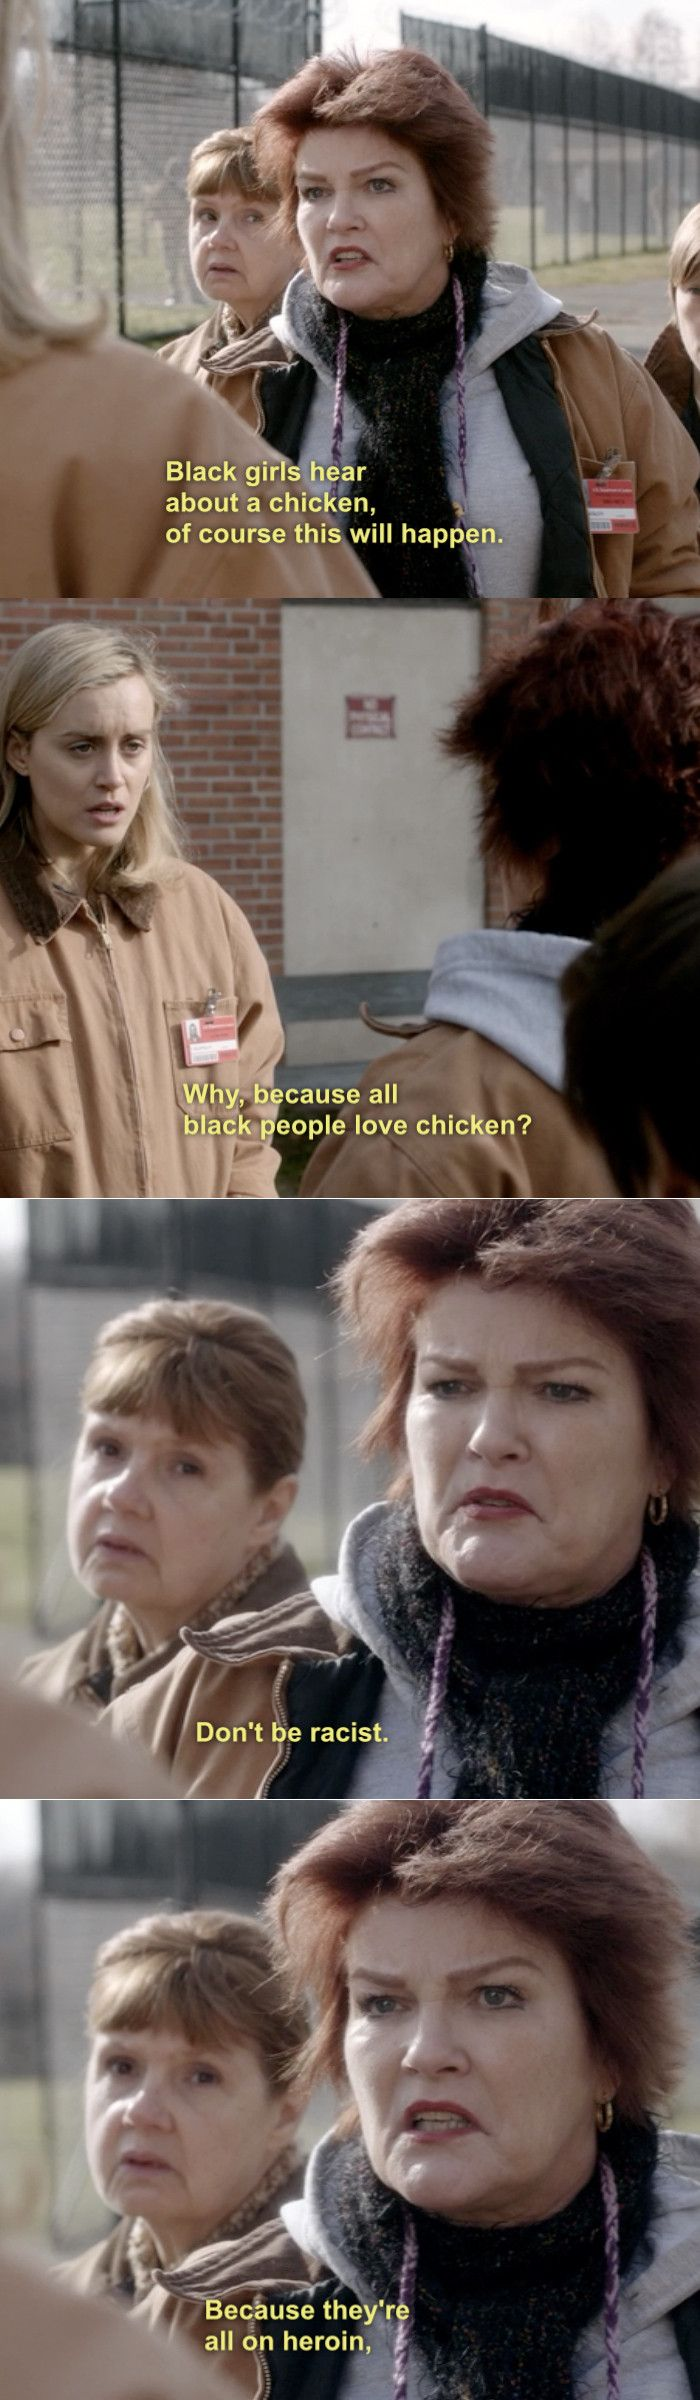 Orange is the New Black - I LOVE this series! #Orangeisthenewblack